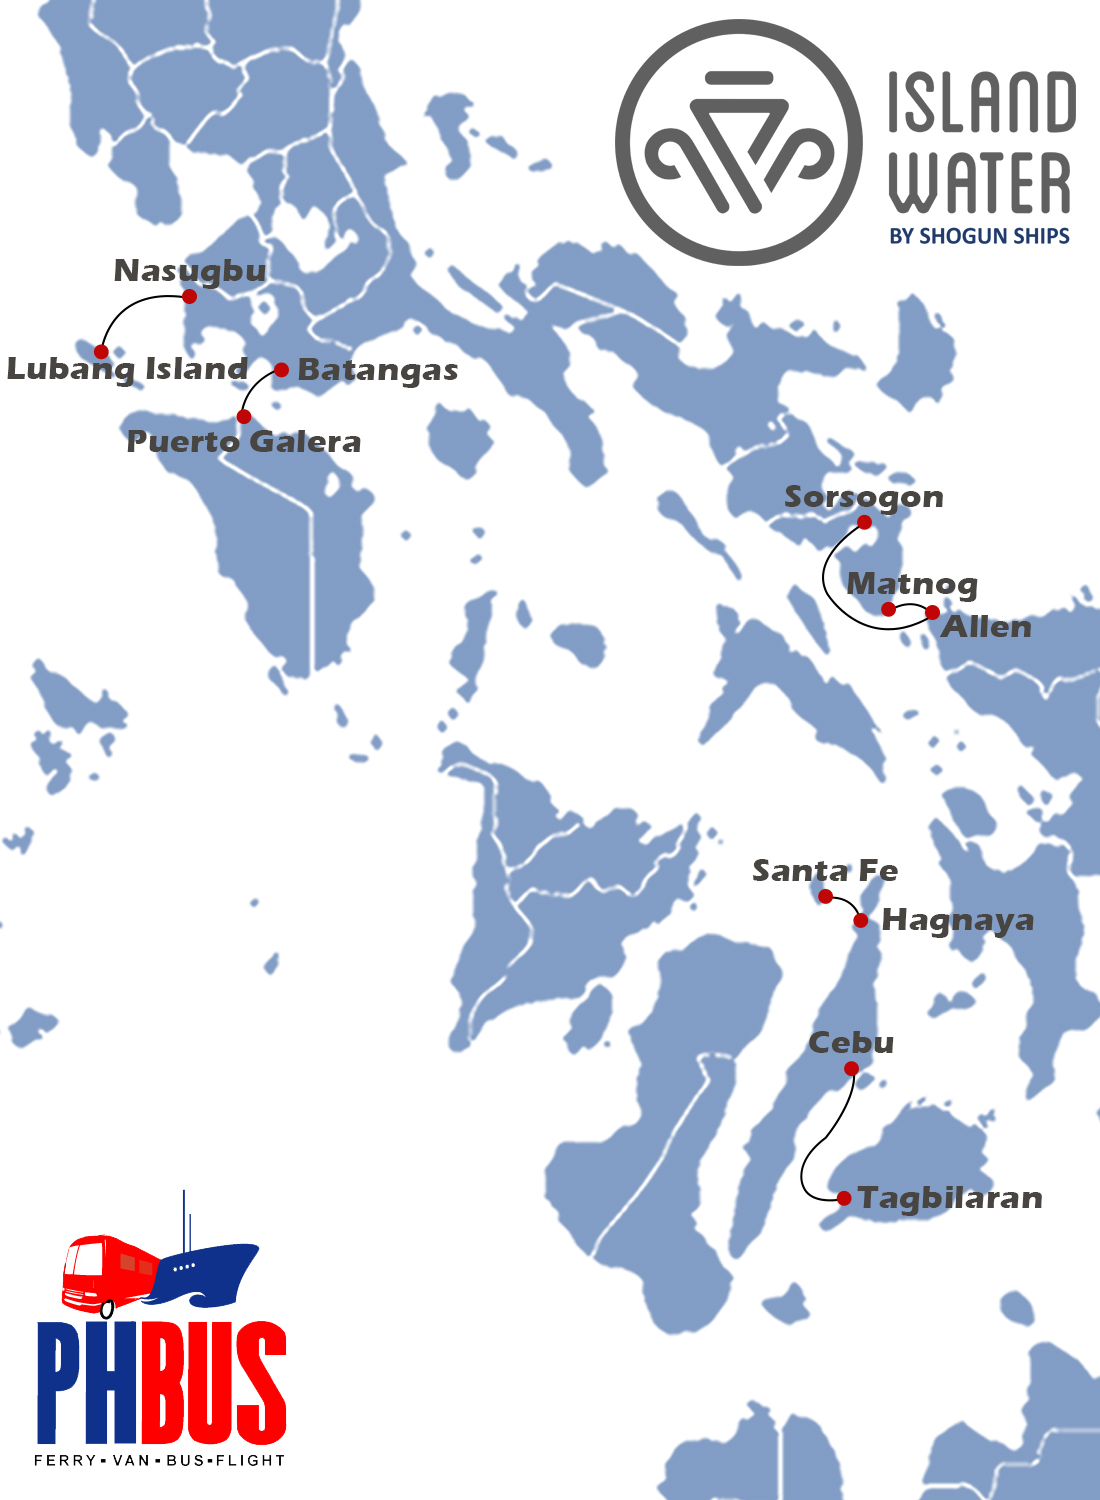 island-water-ferry-route-map-network-phbus.jpg